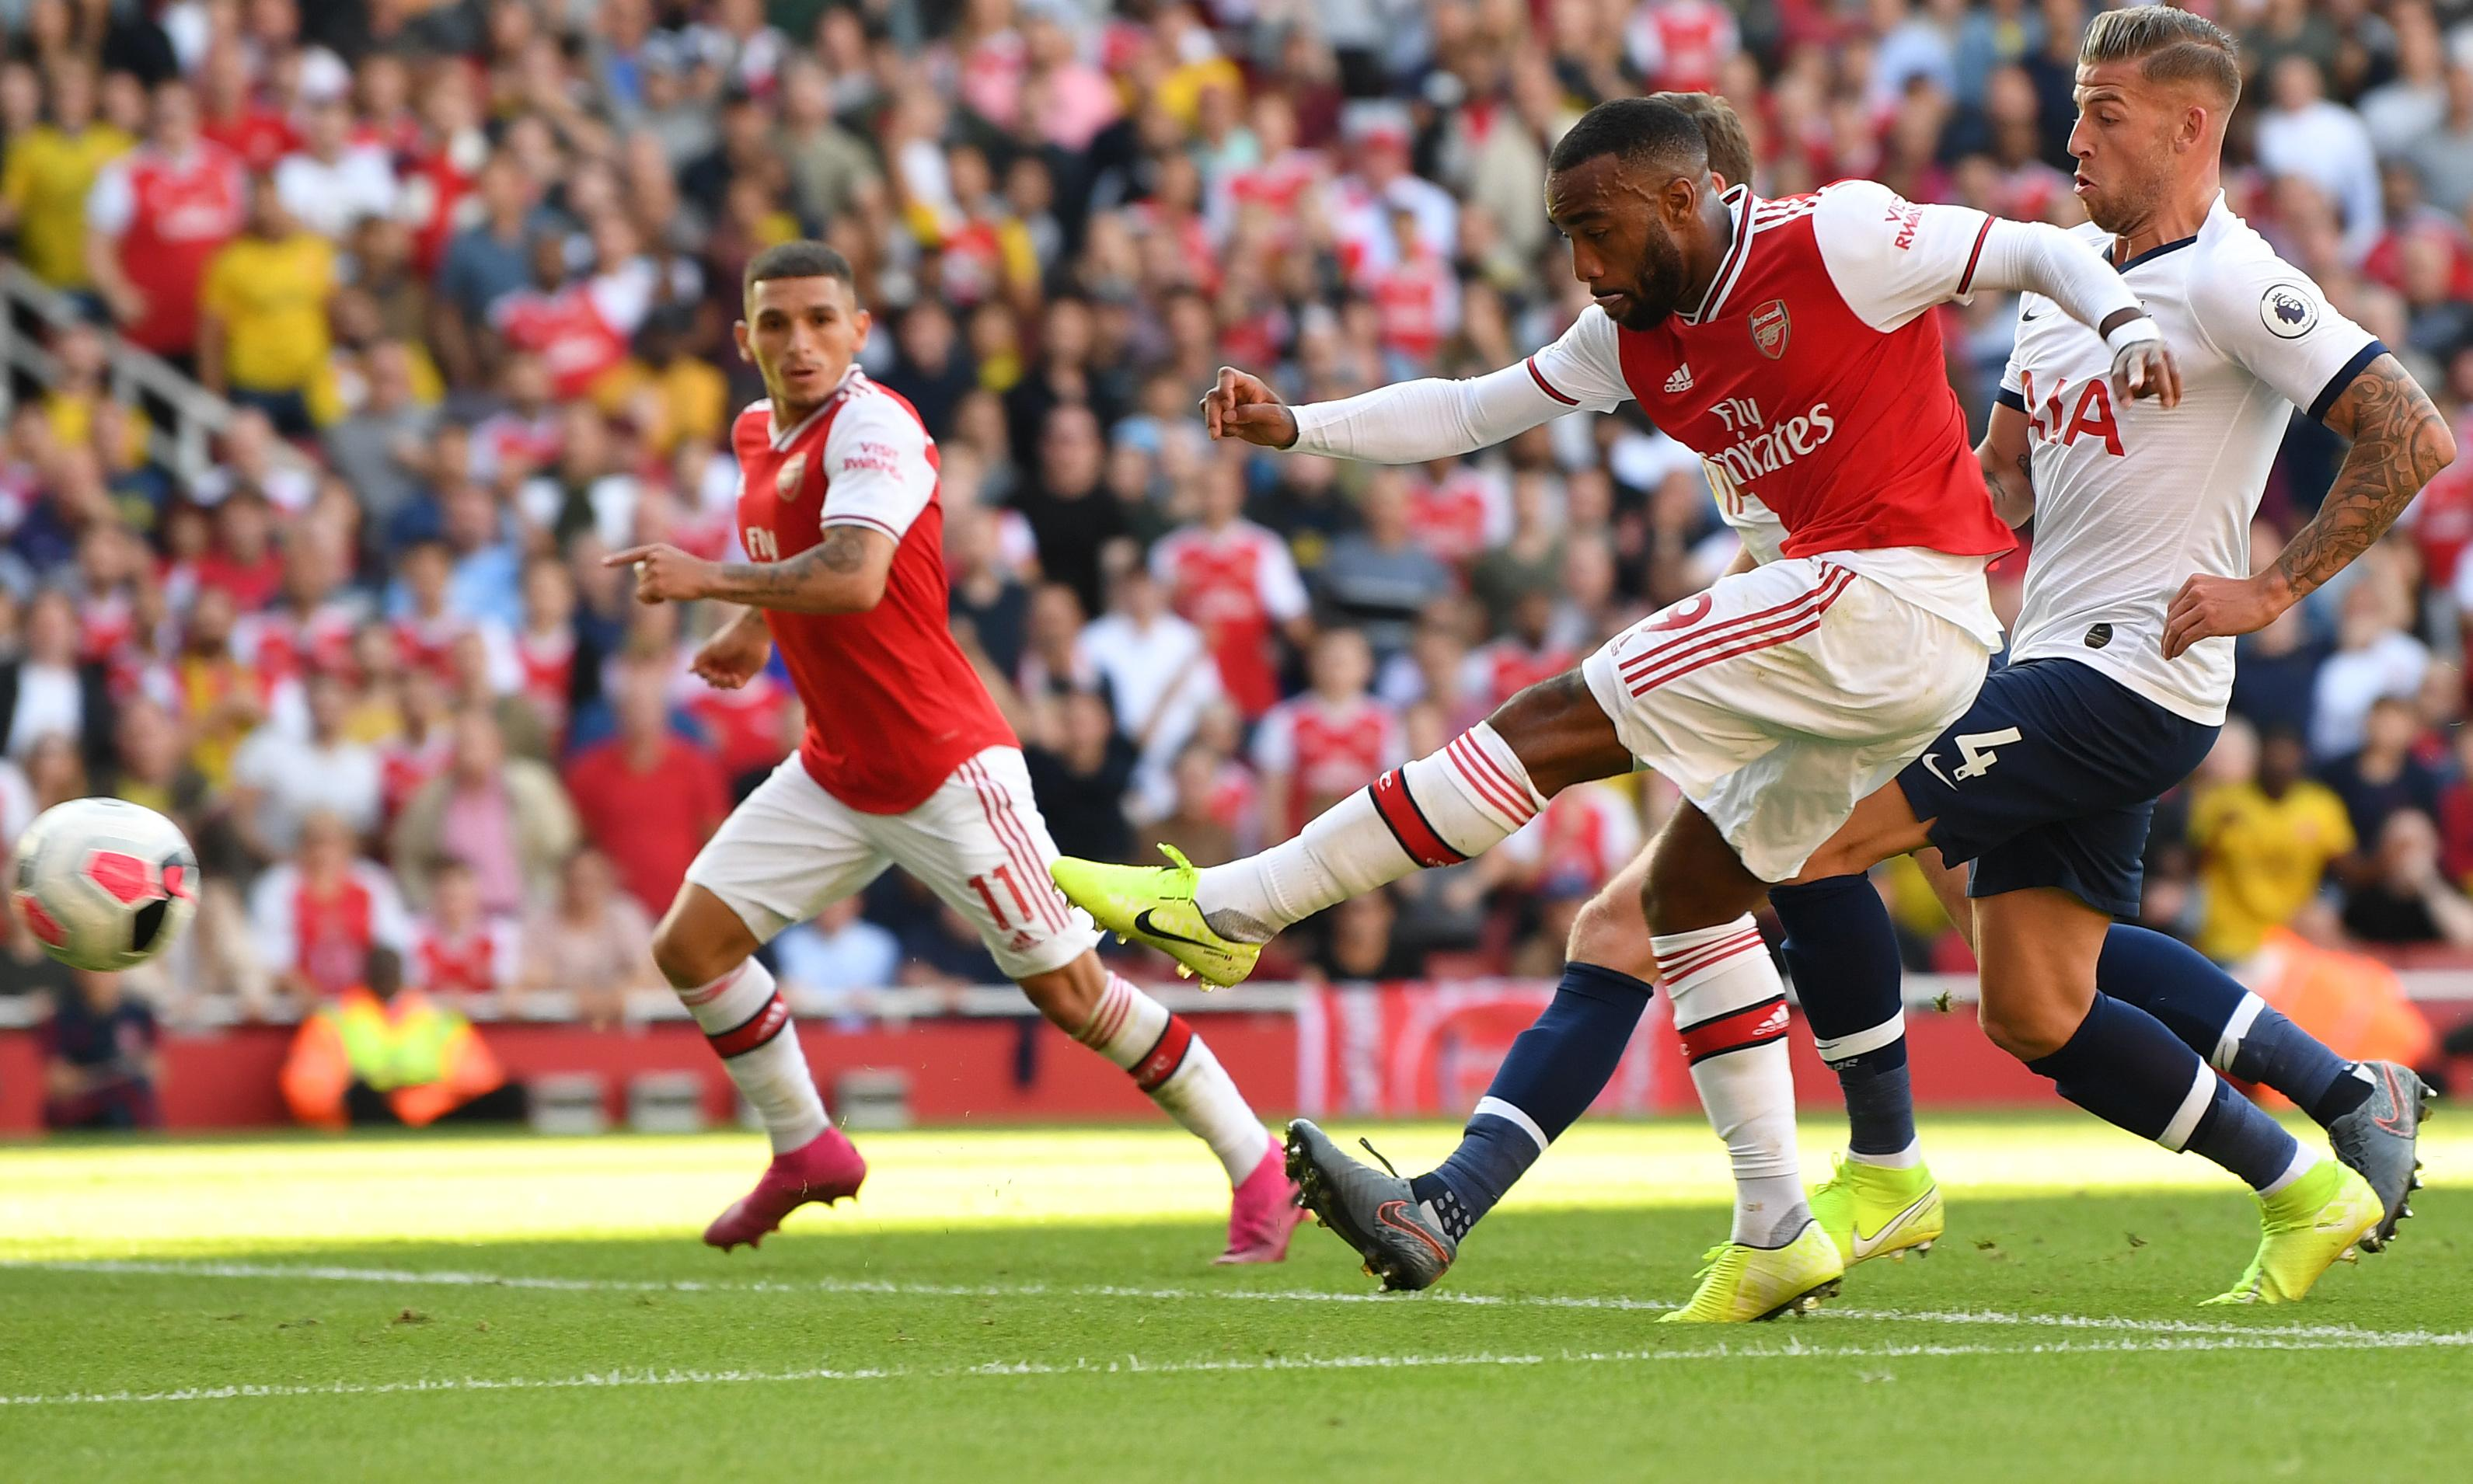 Arsenal's Alexandre Lacazette ruled out until October with ankle injury